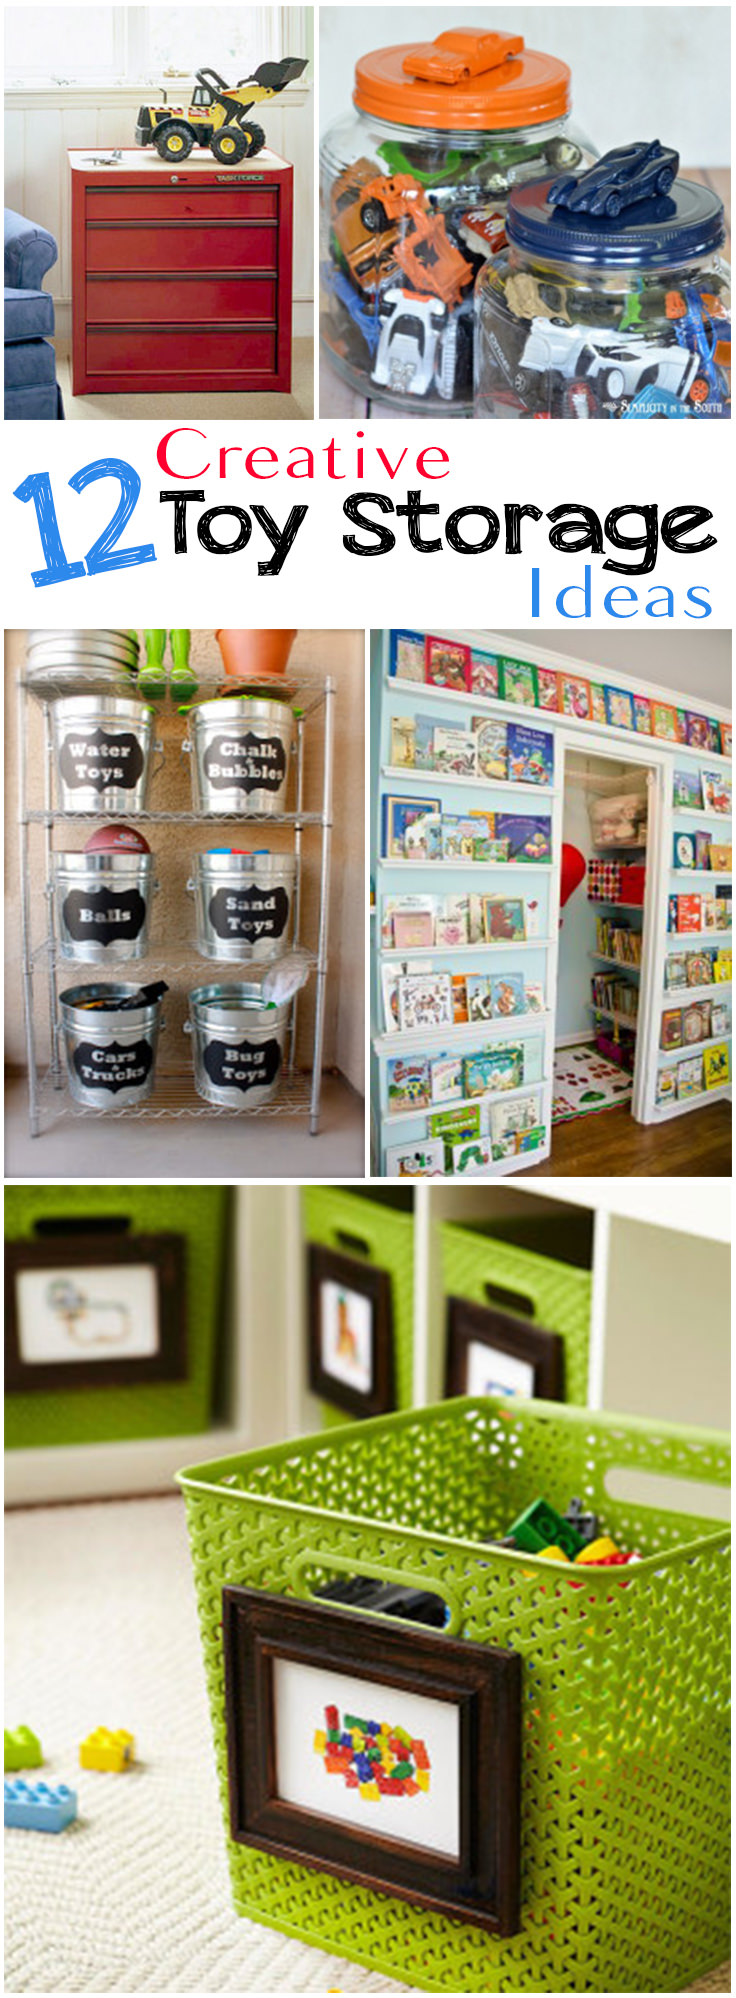 12 Creative Toy Storage Ideas Veryhom